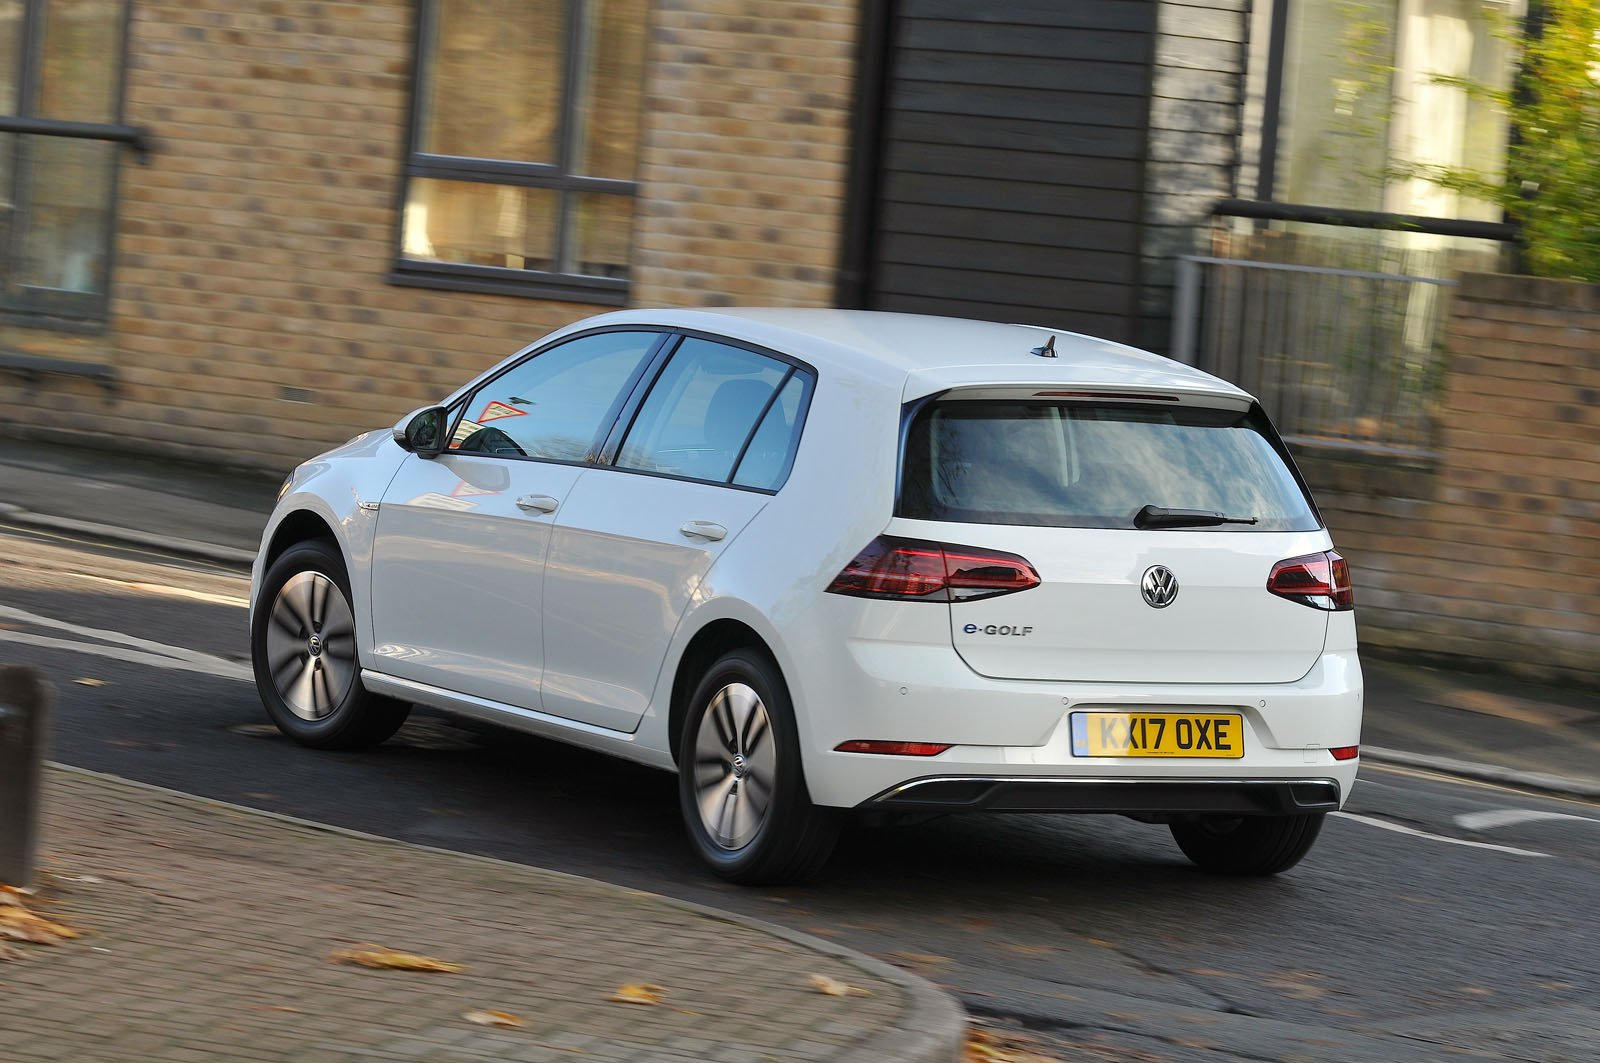 Volkswagen e-Golf 2017 RHD rear cornering shot